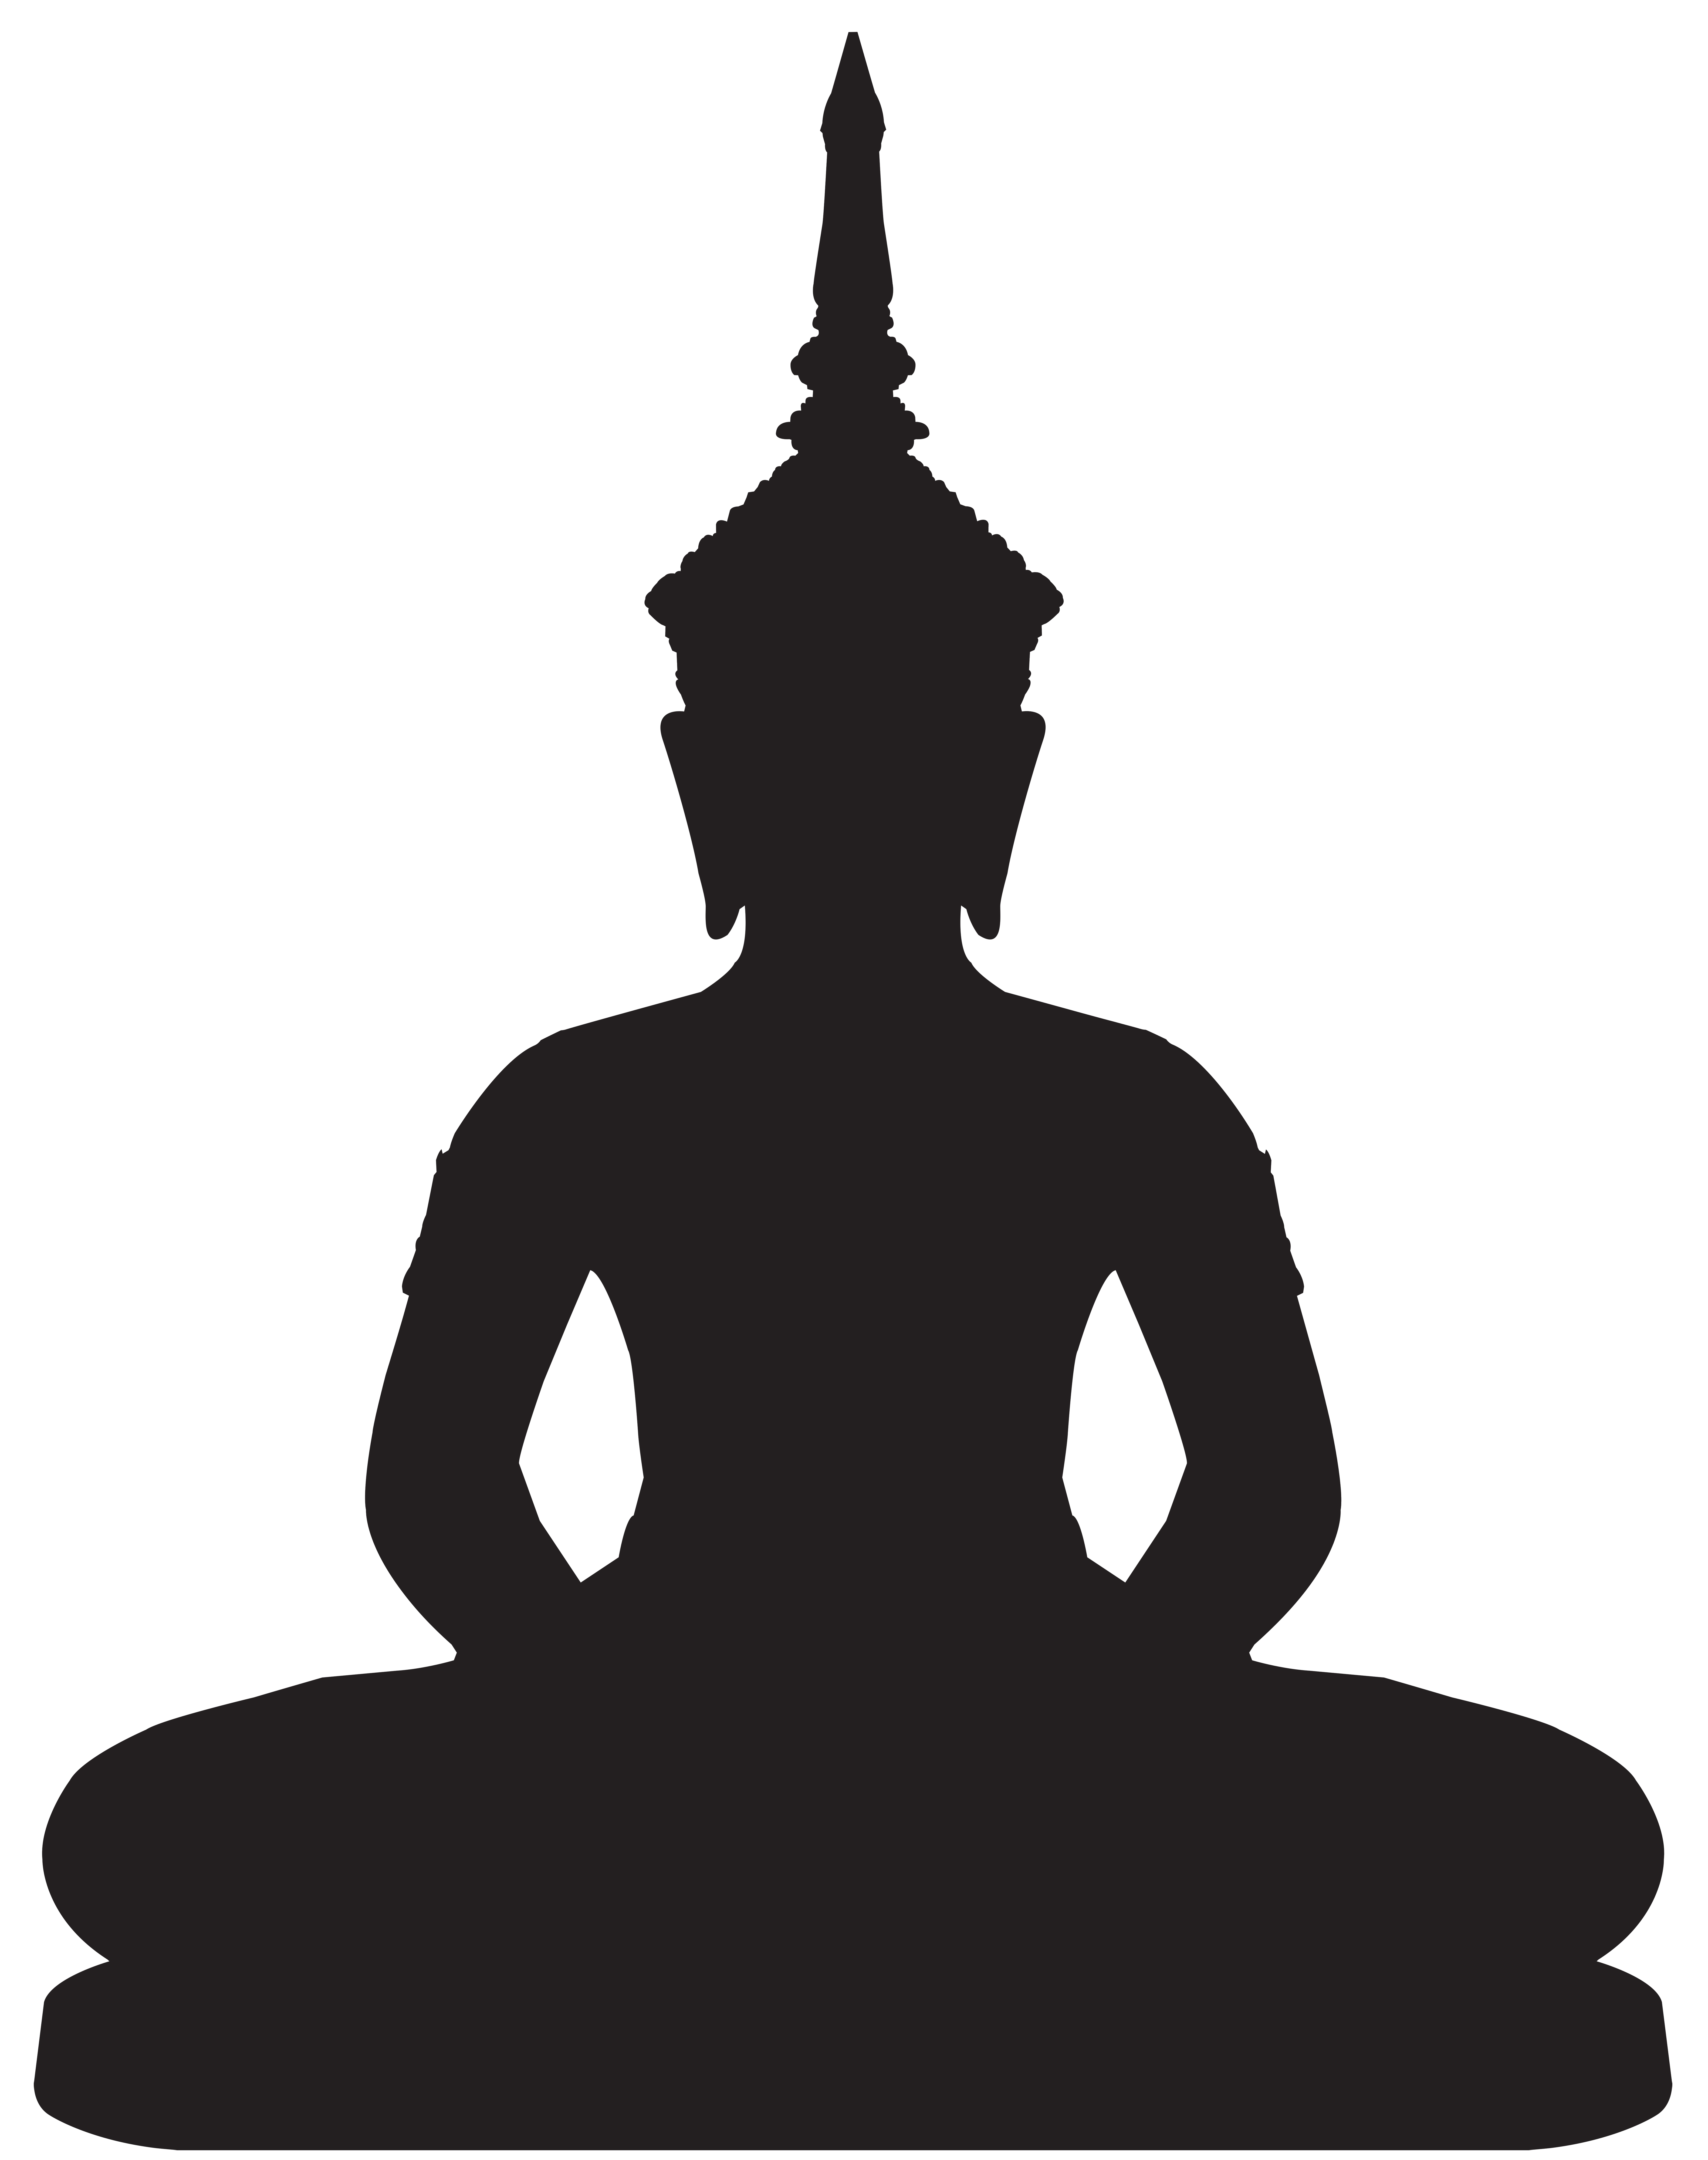 Silhouette meditation at getdrawings. Buddha clipart sillouette jpg stock